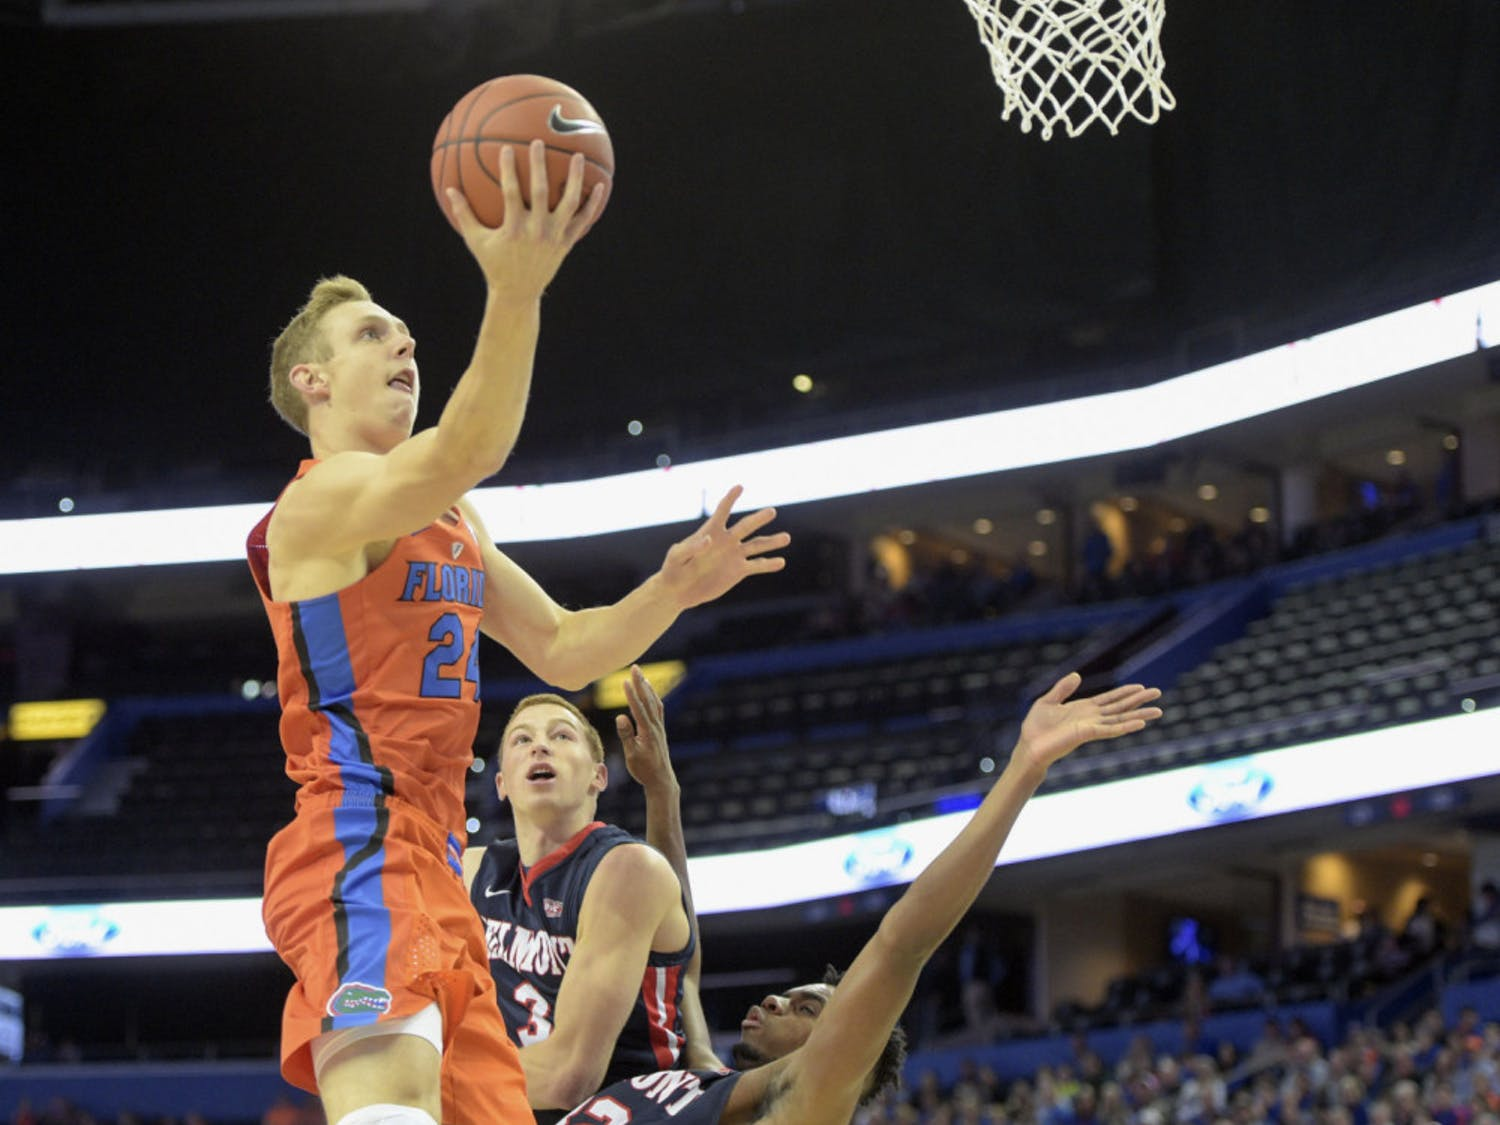 Florida guard Canyon Barry (24) drives to the basket over Belmont forward Amanze Egekeze (32) and guard Dylan Windler (3) in the first half of an NCAA college basketball game in Tampa, Fla., on Monday, Nov/ 21, 2016. (Andres Leiva/Tampa Bay Times via AP)